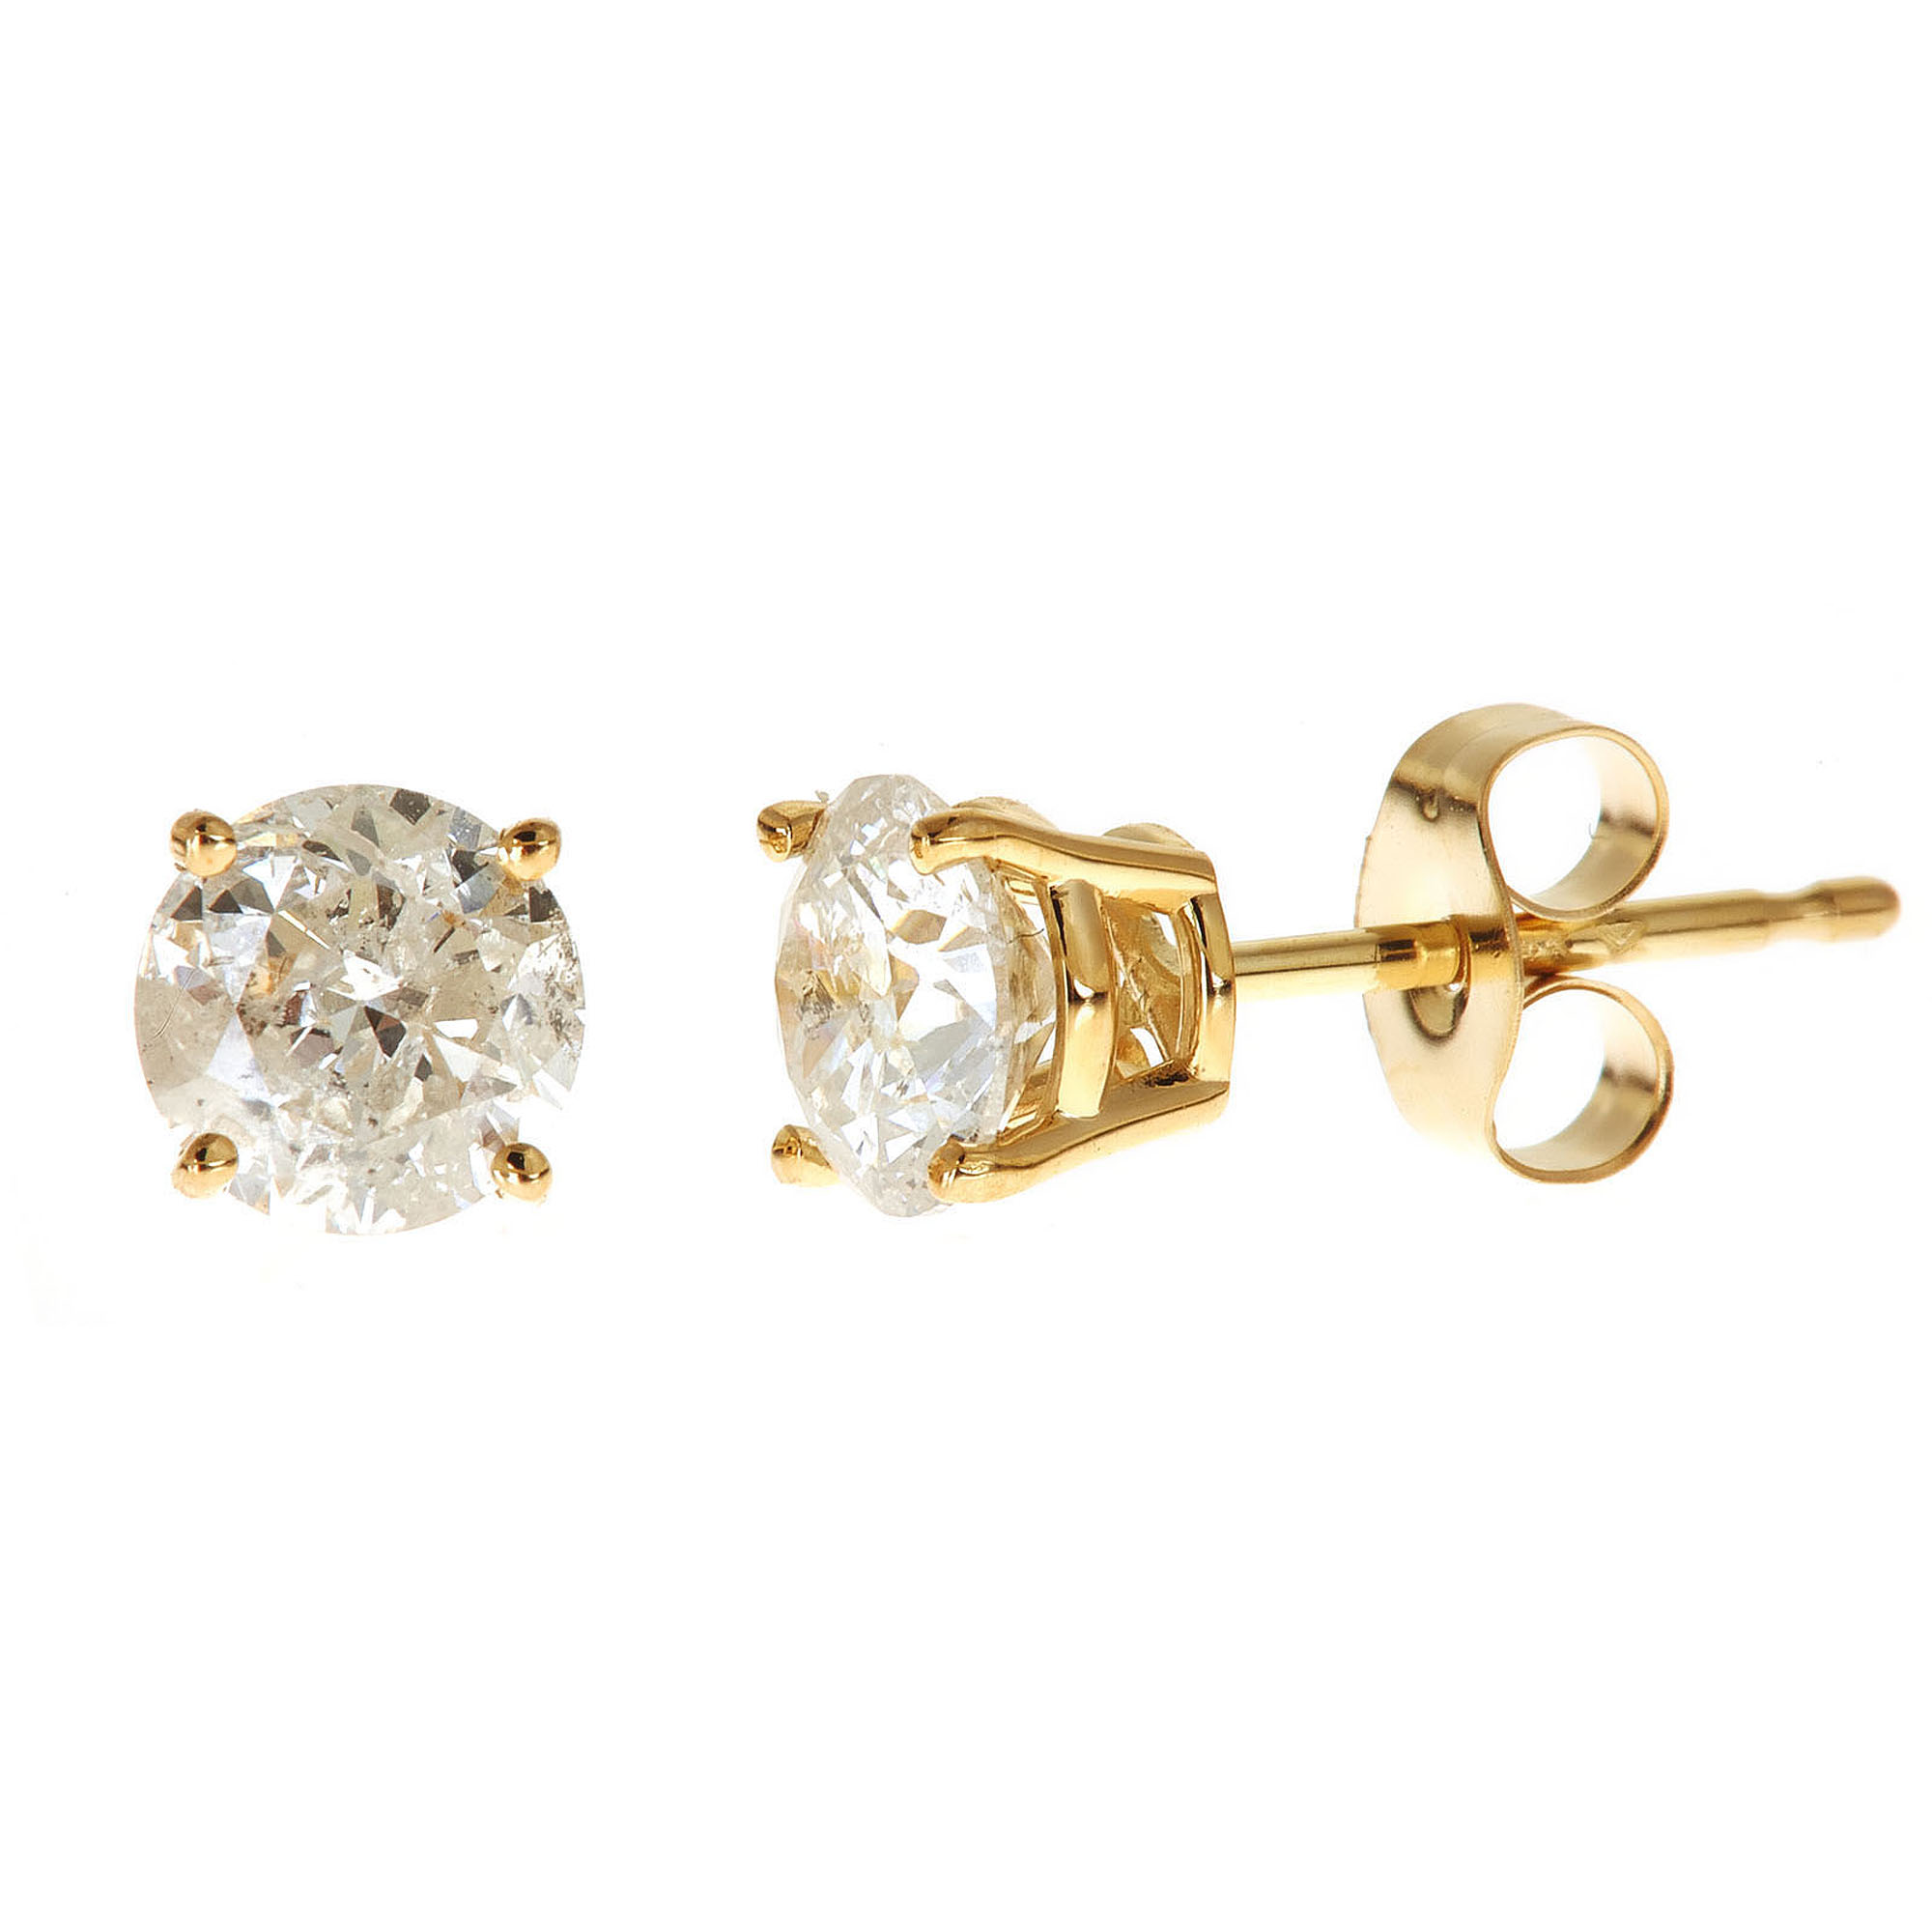 cut fashion earrings princess jewelry gold white diamond gia stud solitaire certified